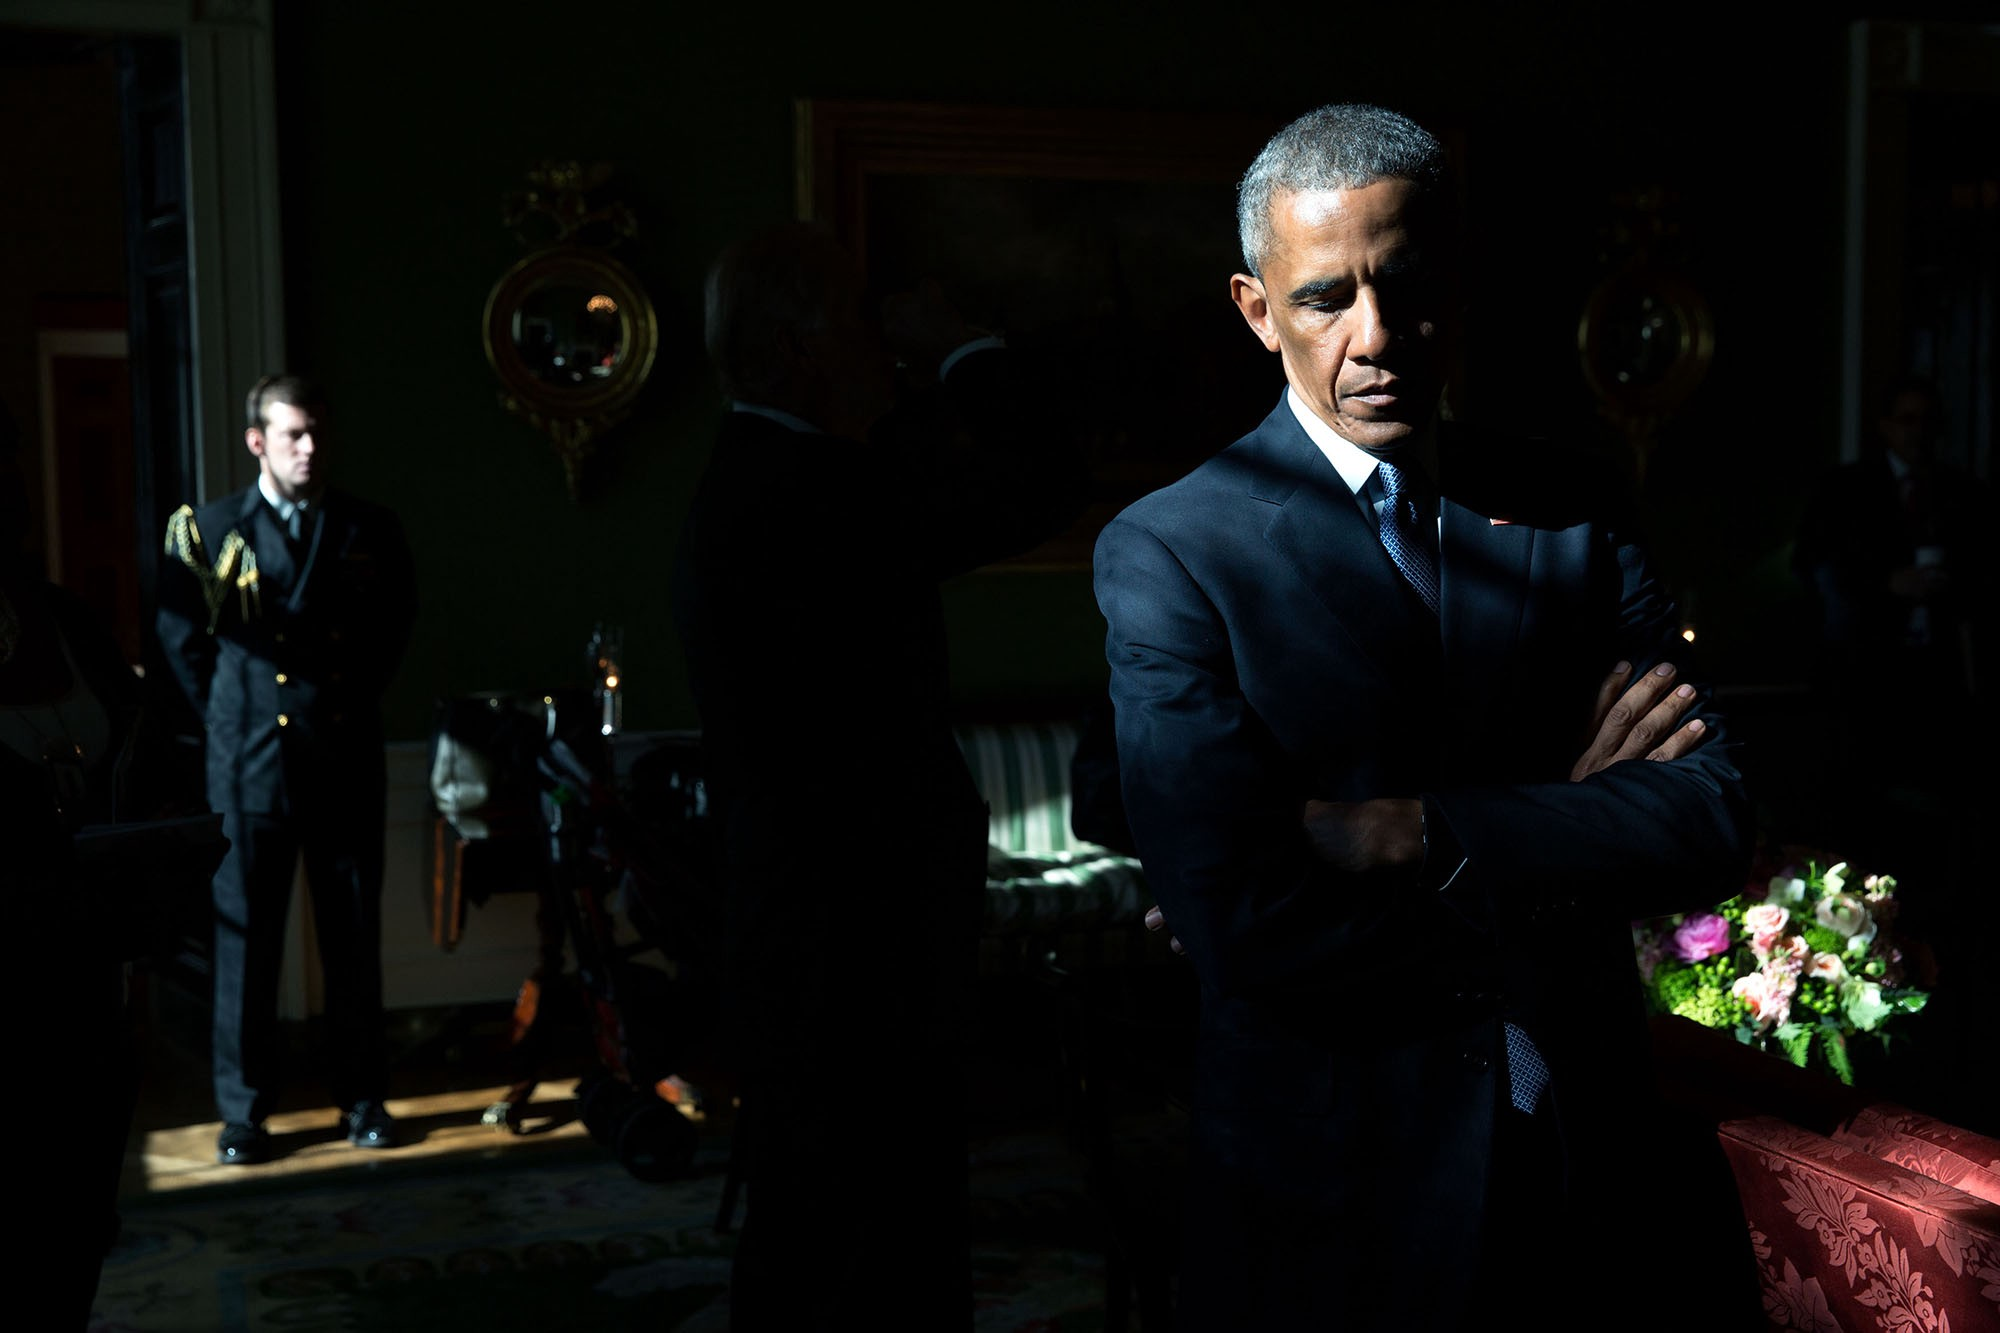 The main photographer of Barack Obama presented his best shots for 2015